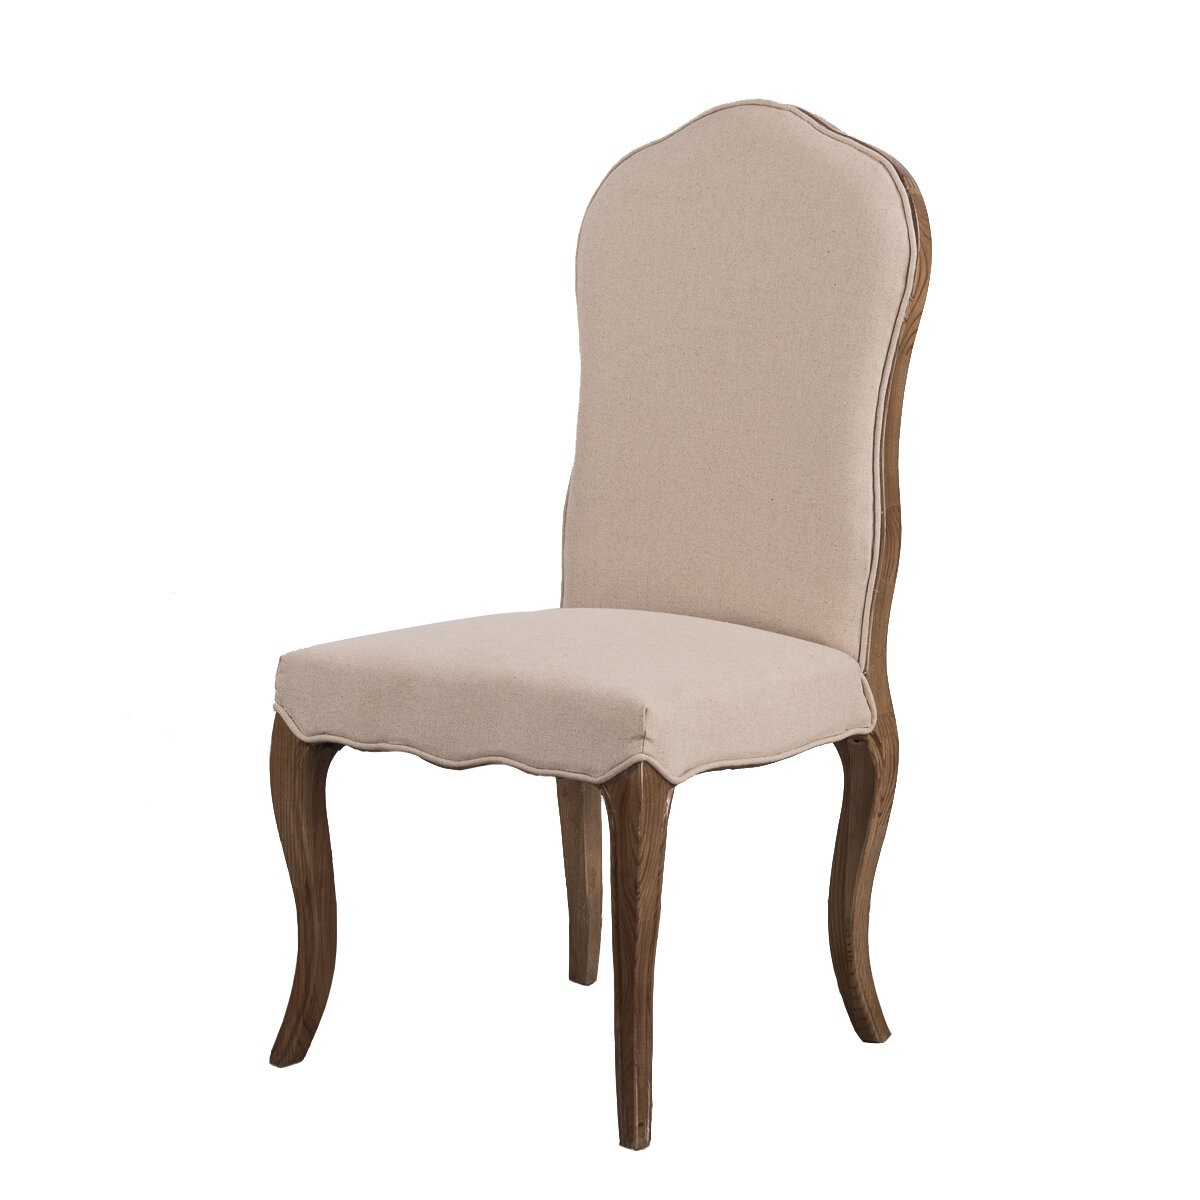 French Provincial Furniture Dining Chair in Natural Oak